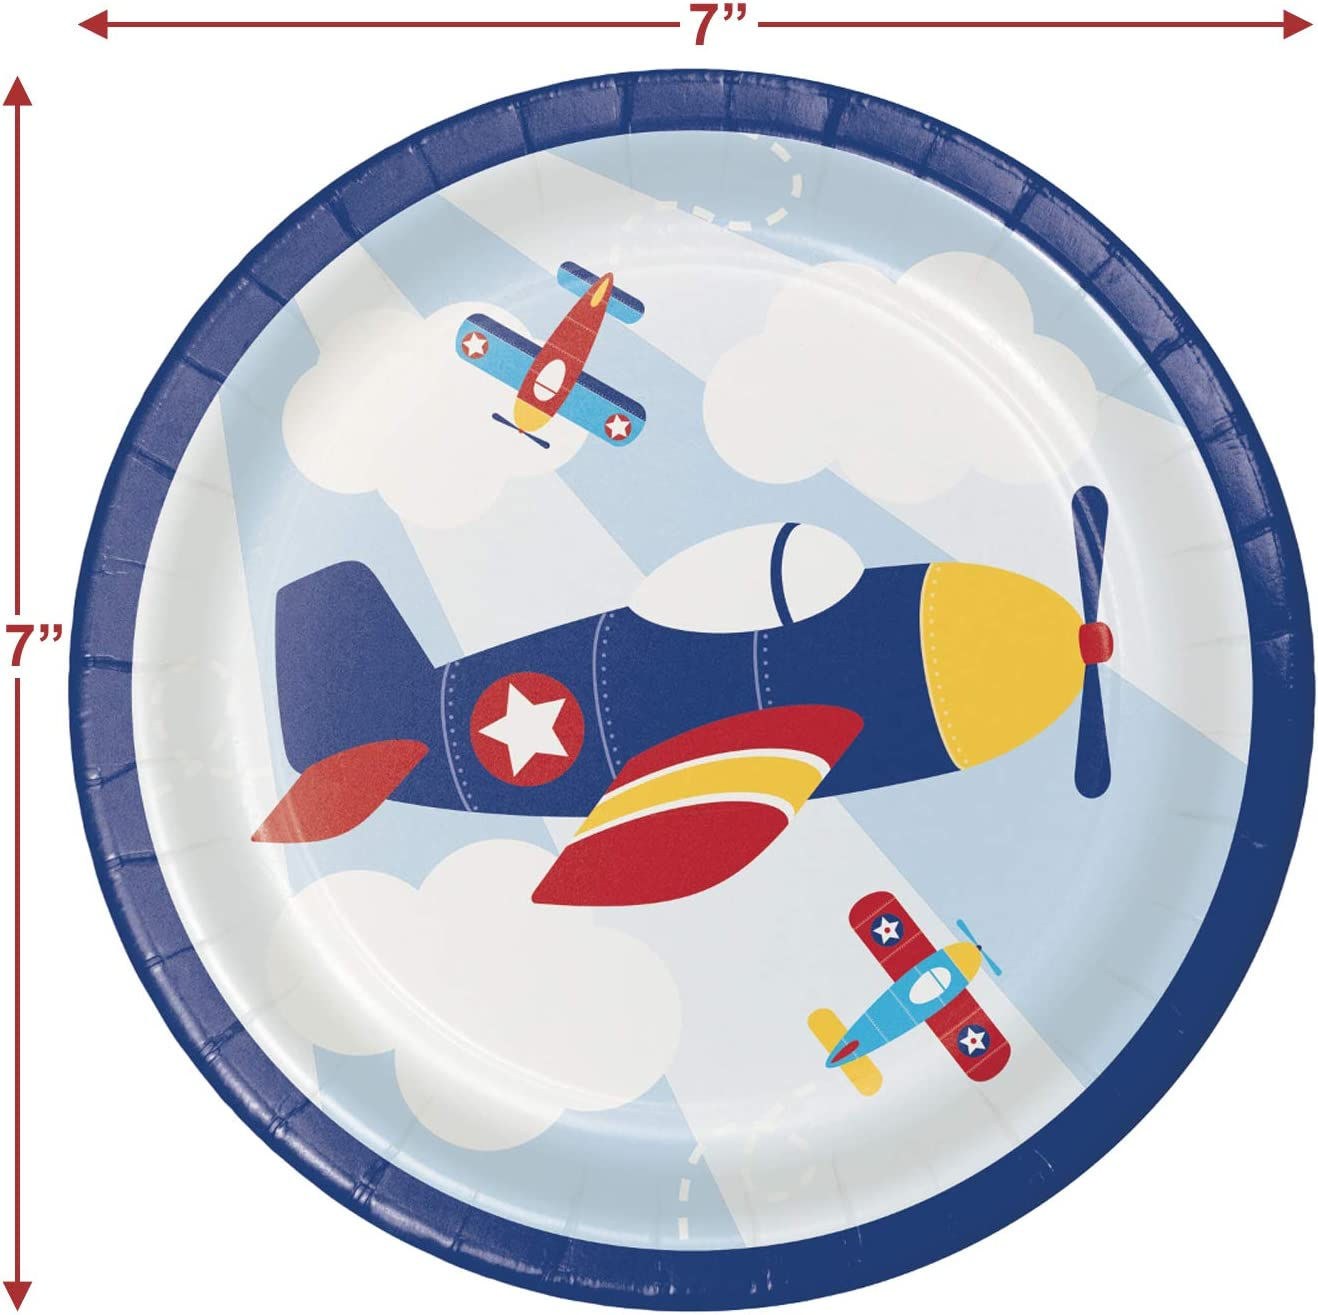 Set of 2 Decorations for 1st Birthday or Preschool Parties Airplane Party Tablecloth and Garland Set Toddler